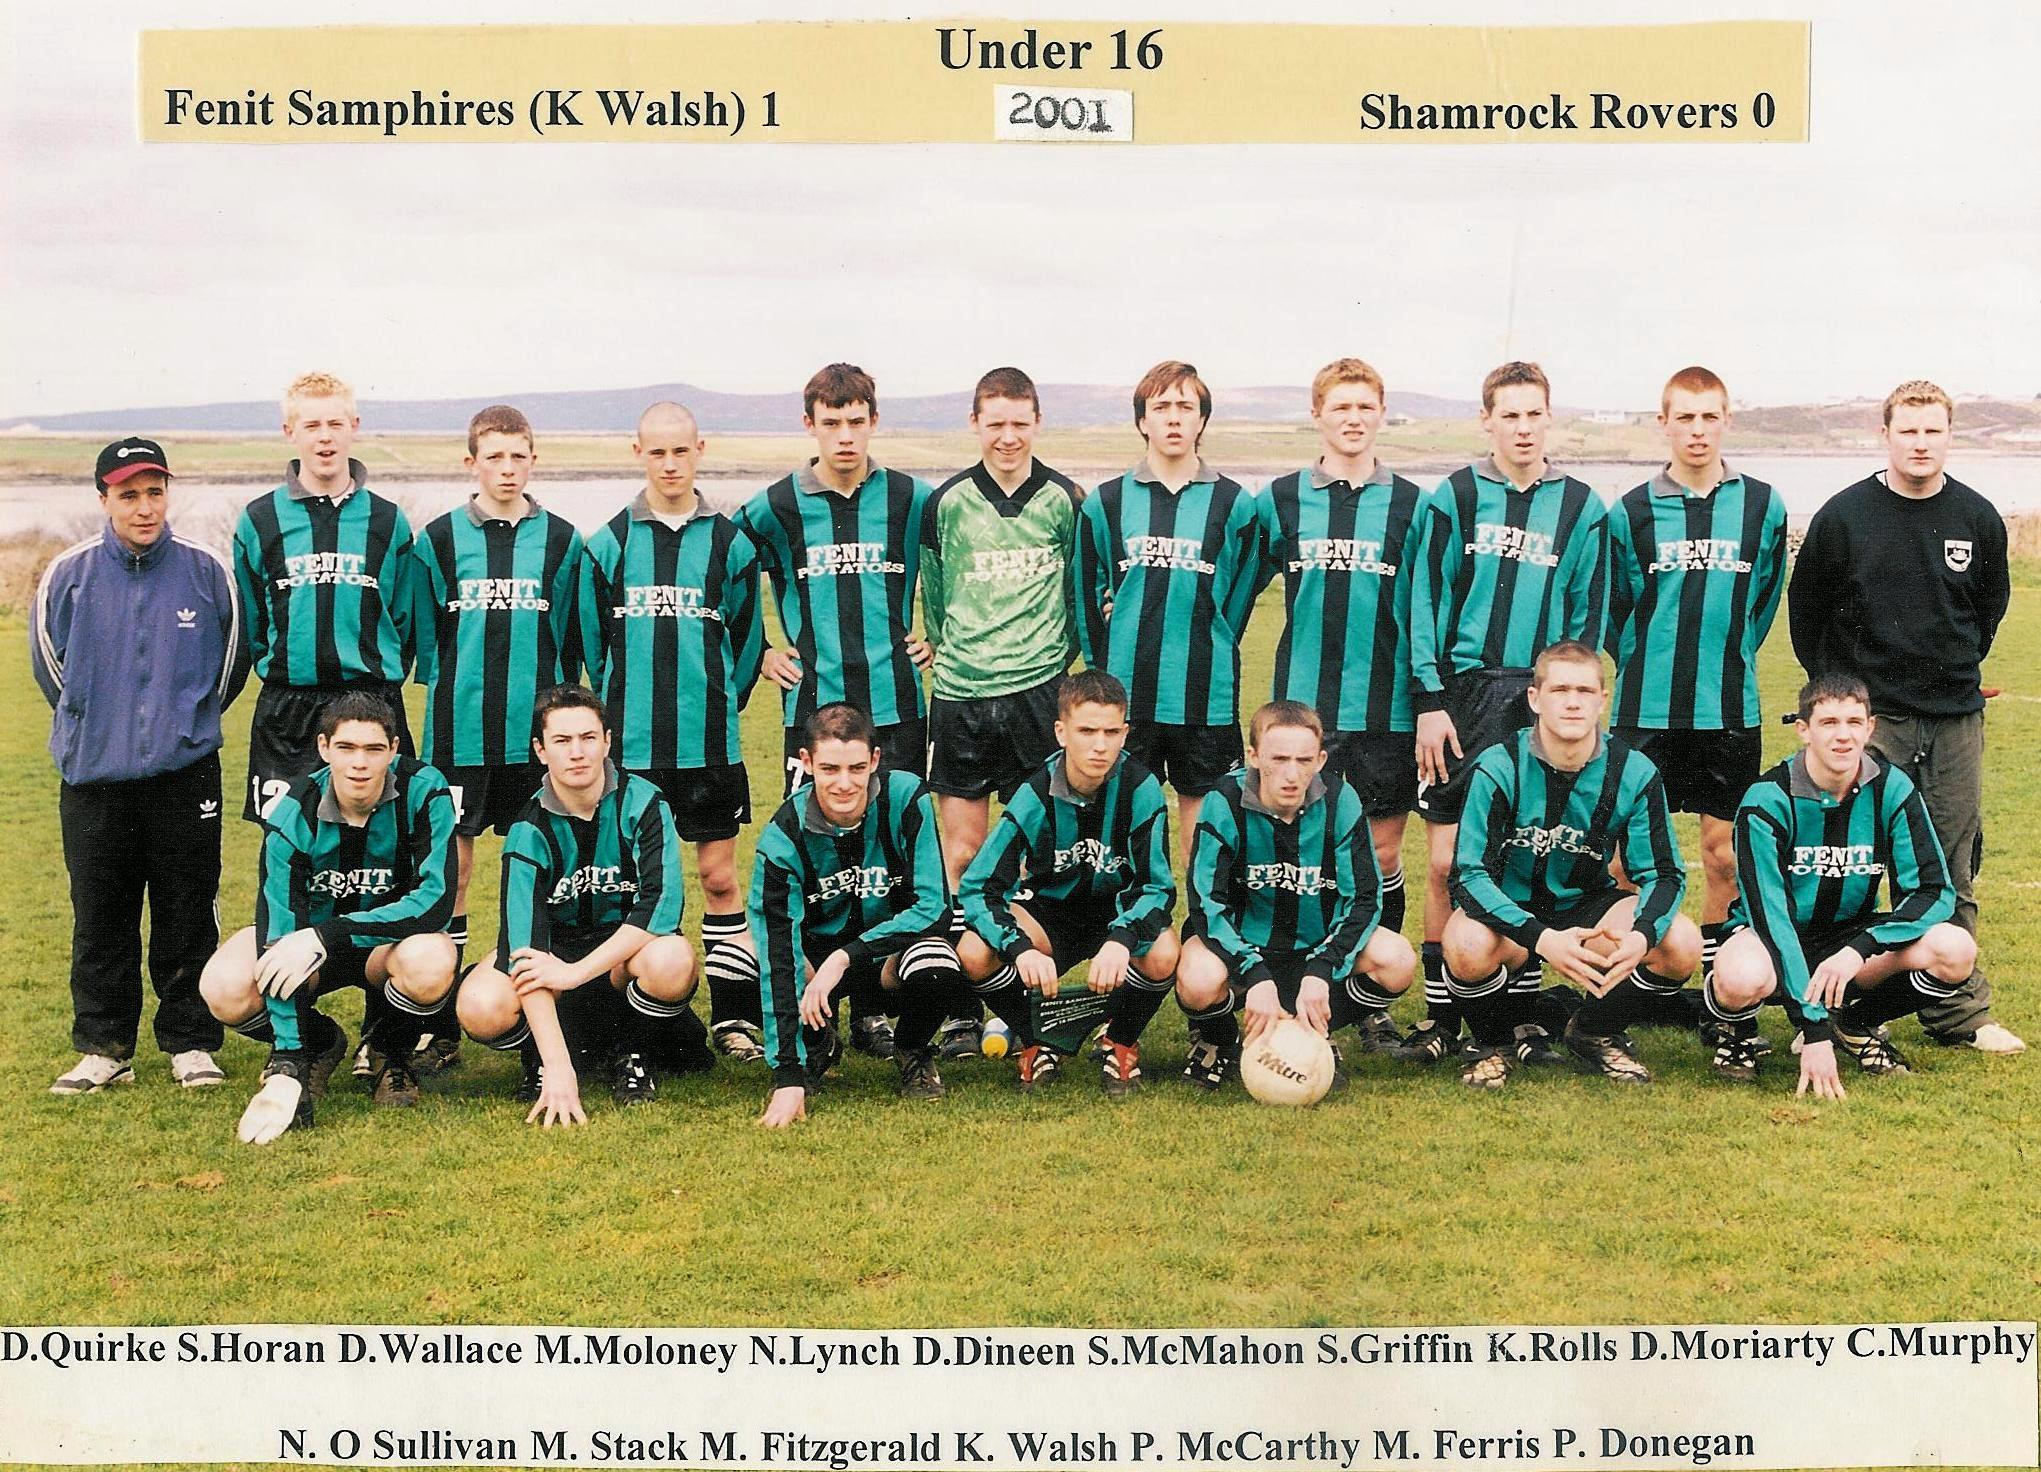 samphires u16 team v shamrock rovers